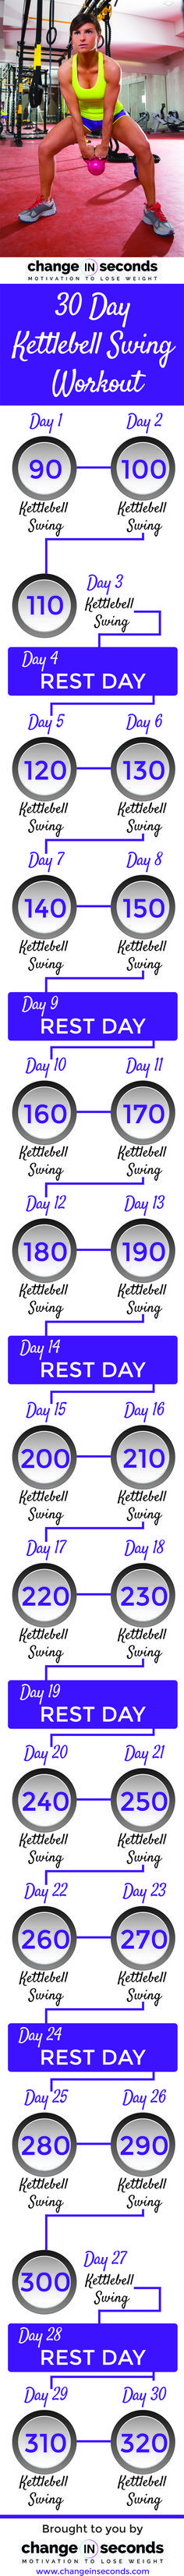 30 Day Kettlebell Swing Workout (Download PDF)